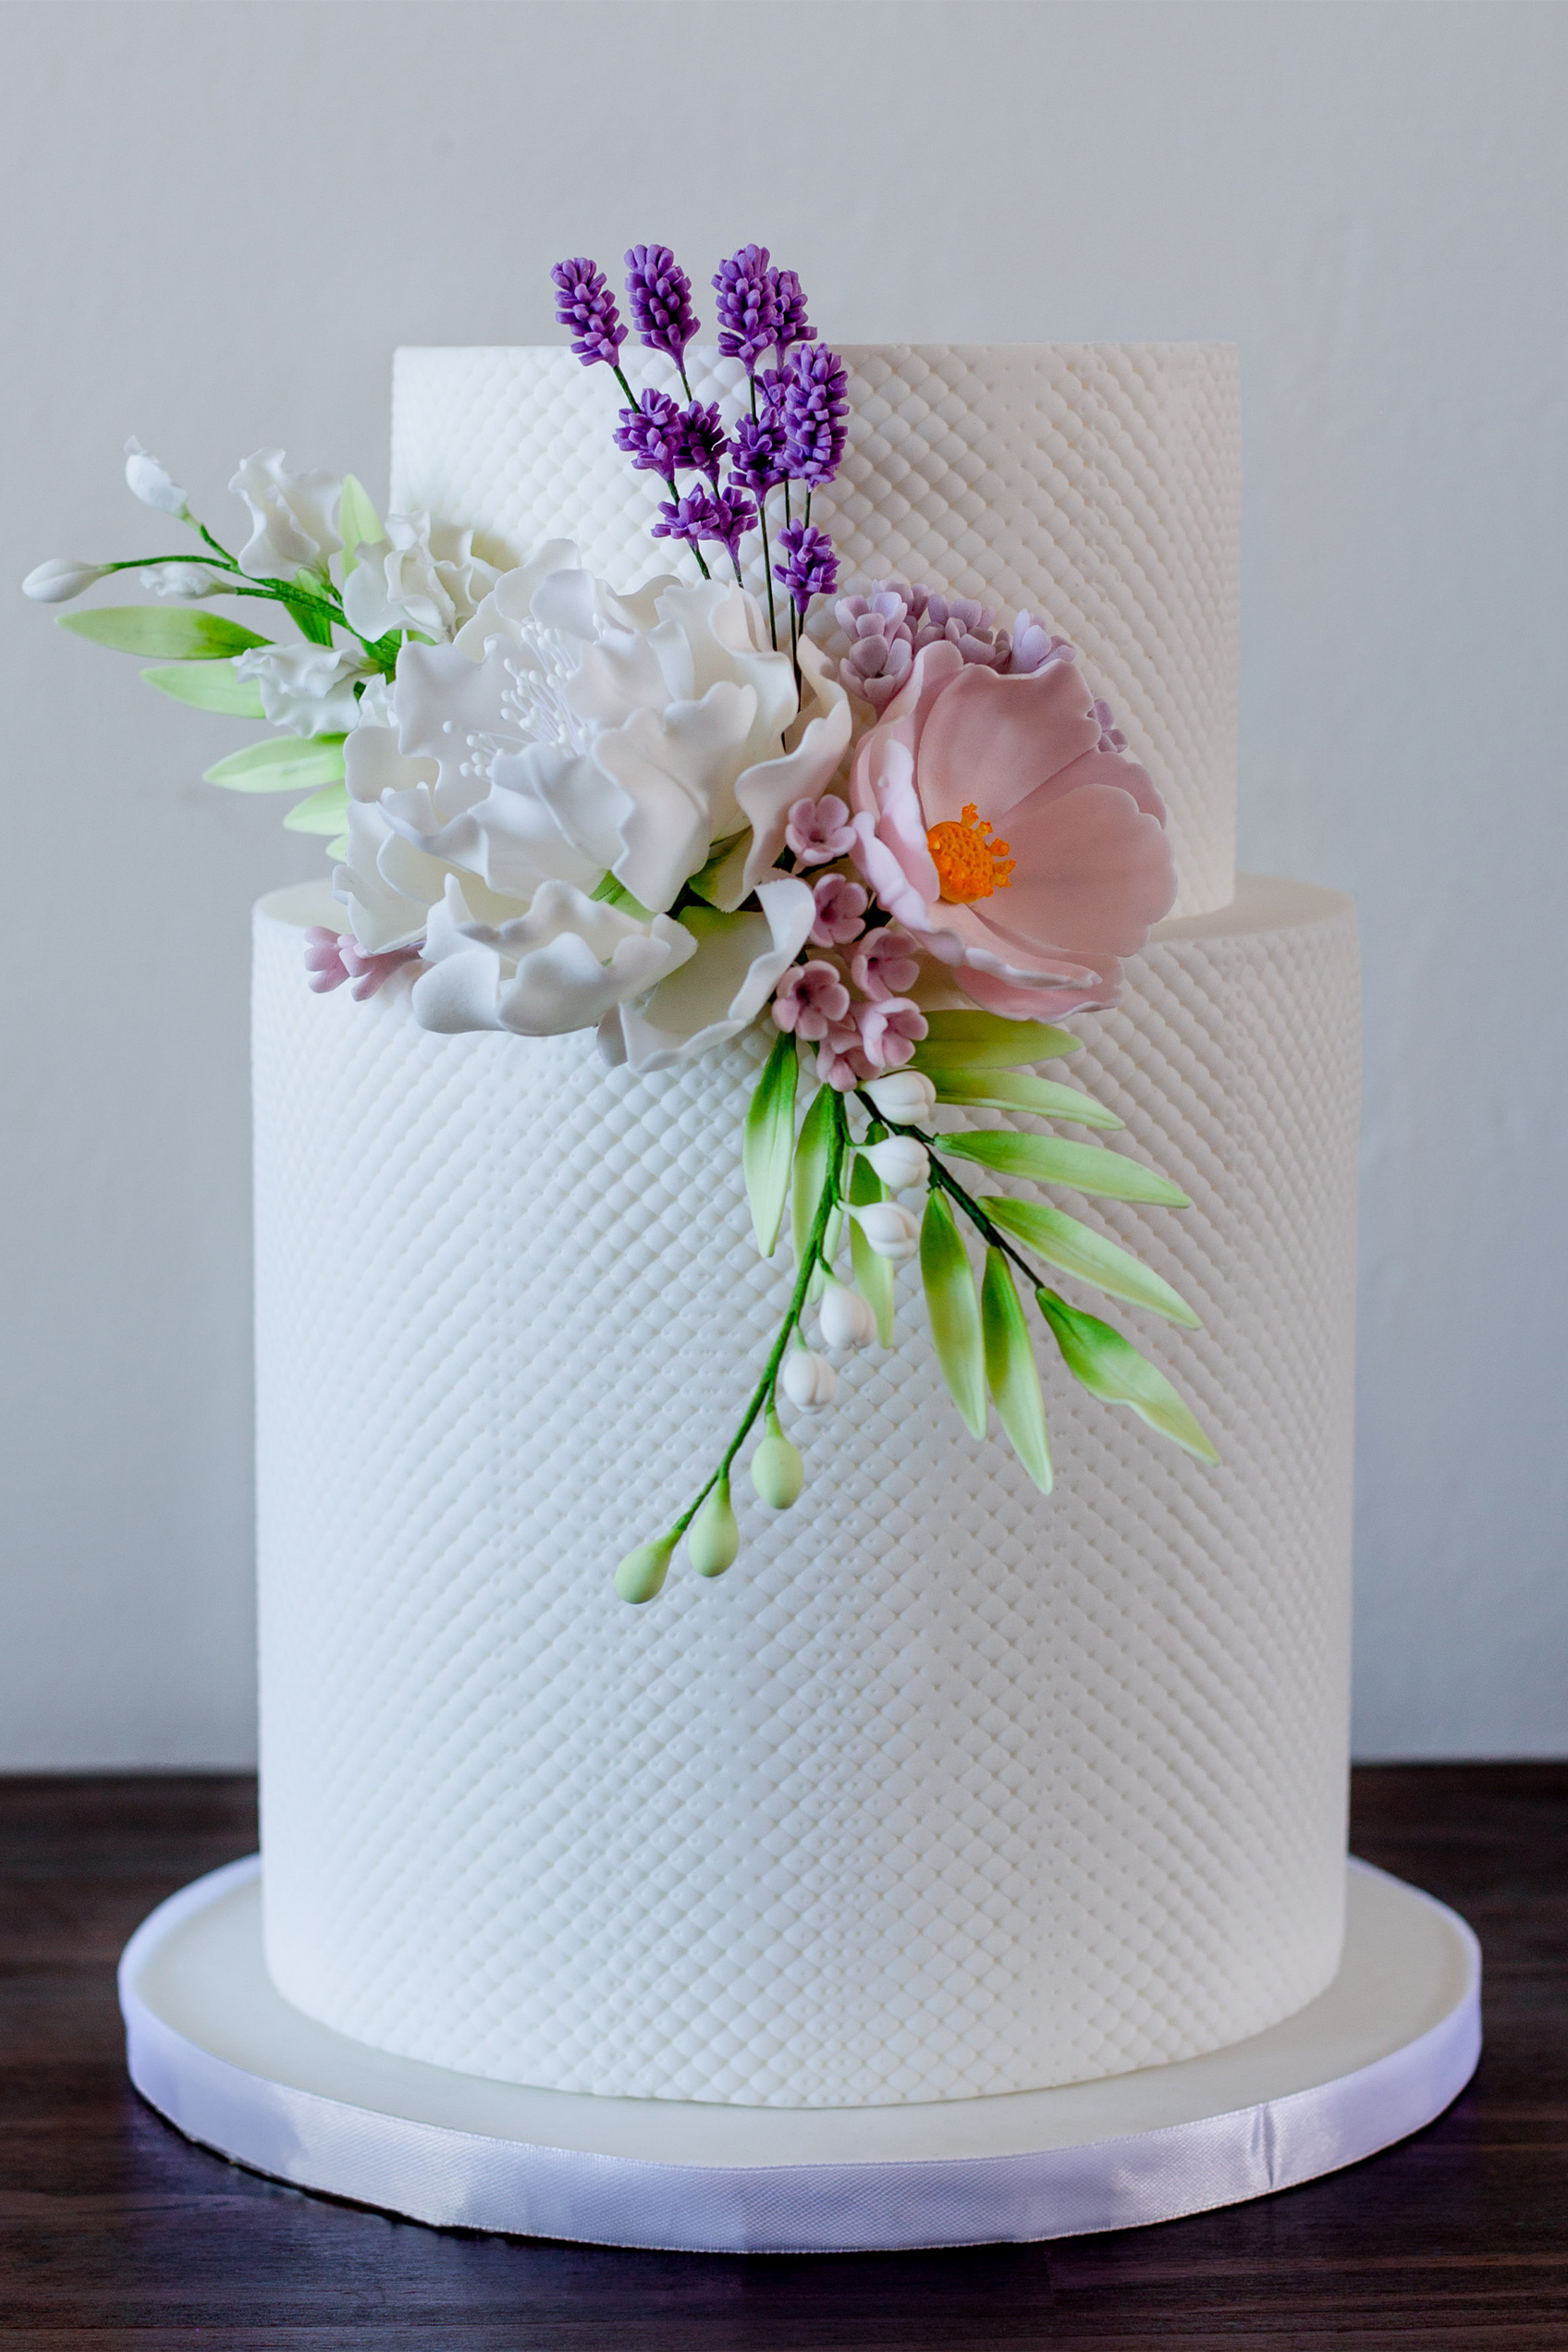 Samantha Liang Cake Artistry - Cakes & Desserts Cape Town